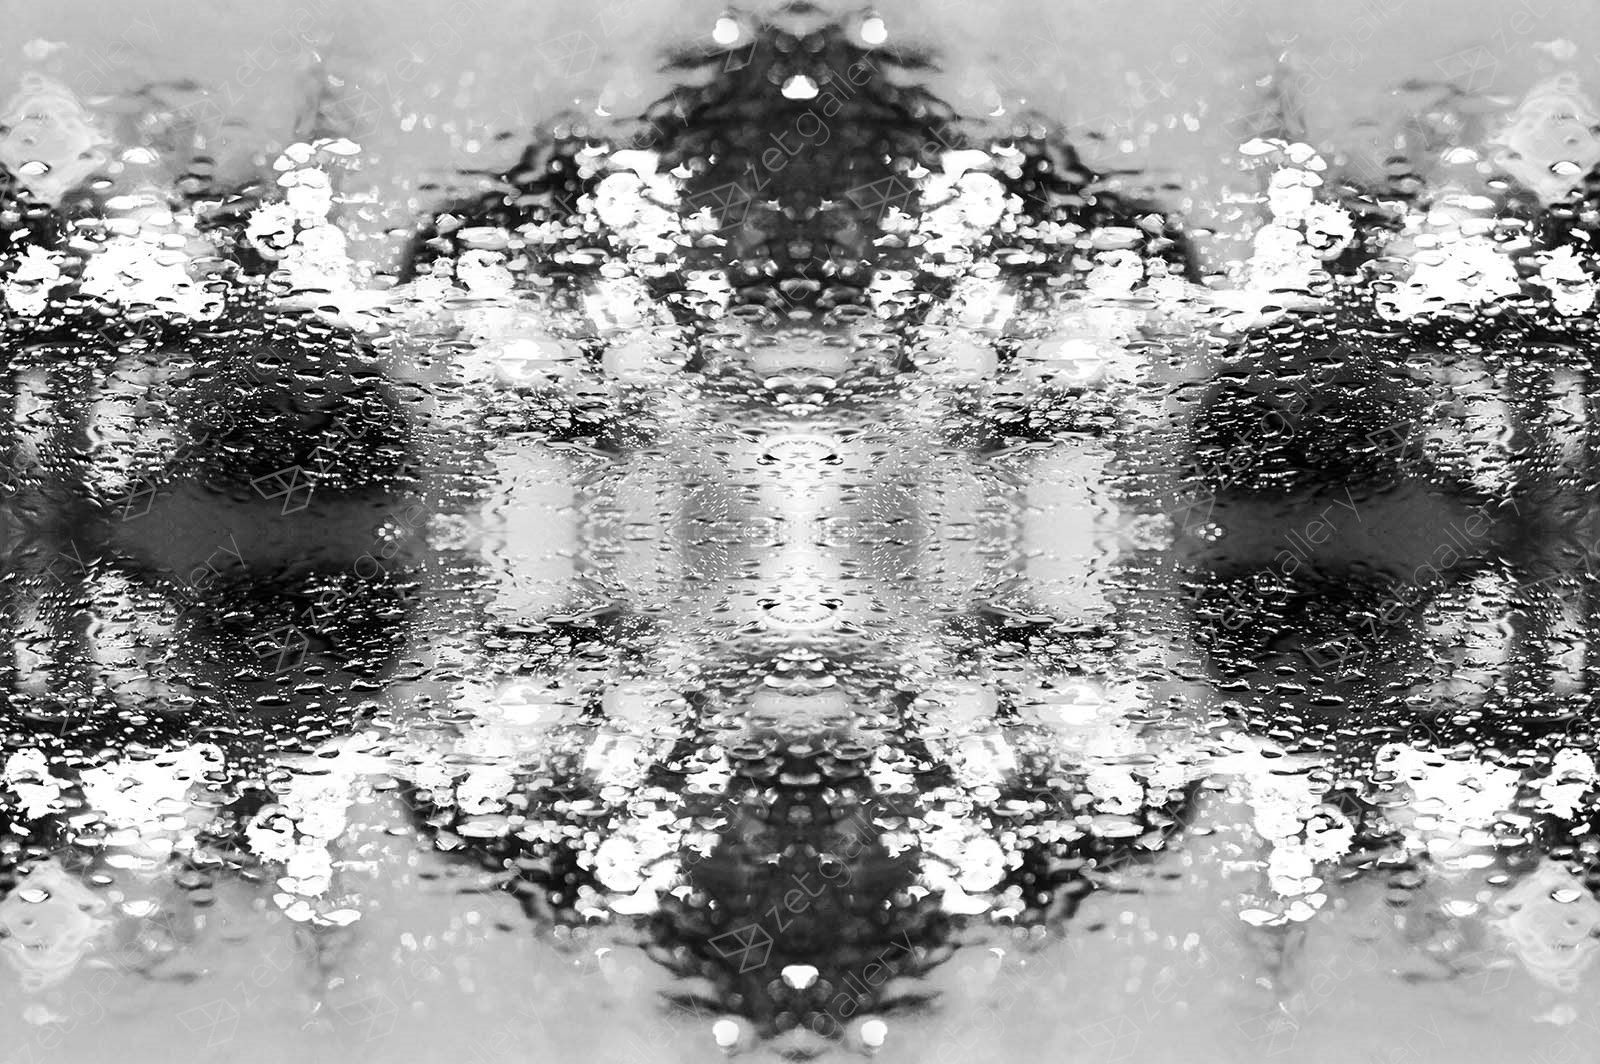 Through the Droplet, through the Glass 3, original Geometric Digital Photography by Goeth Zilla